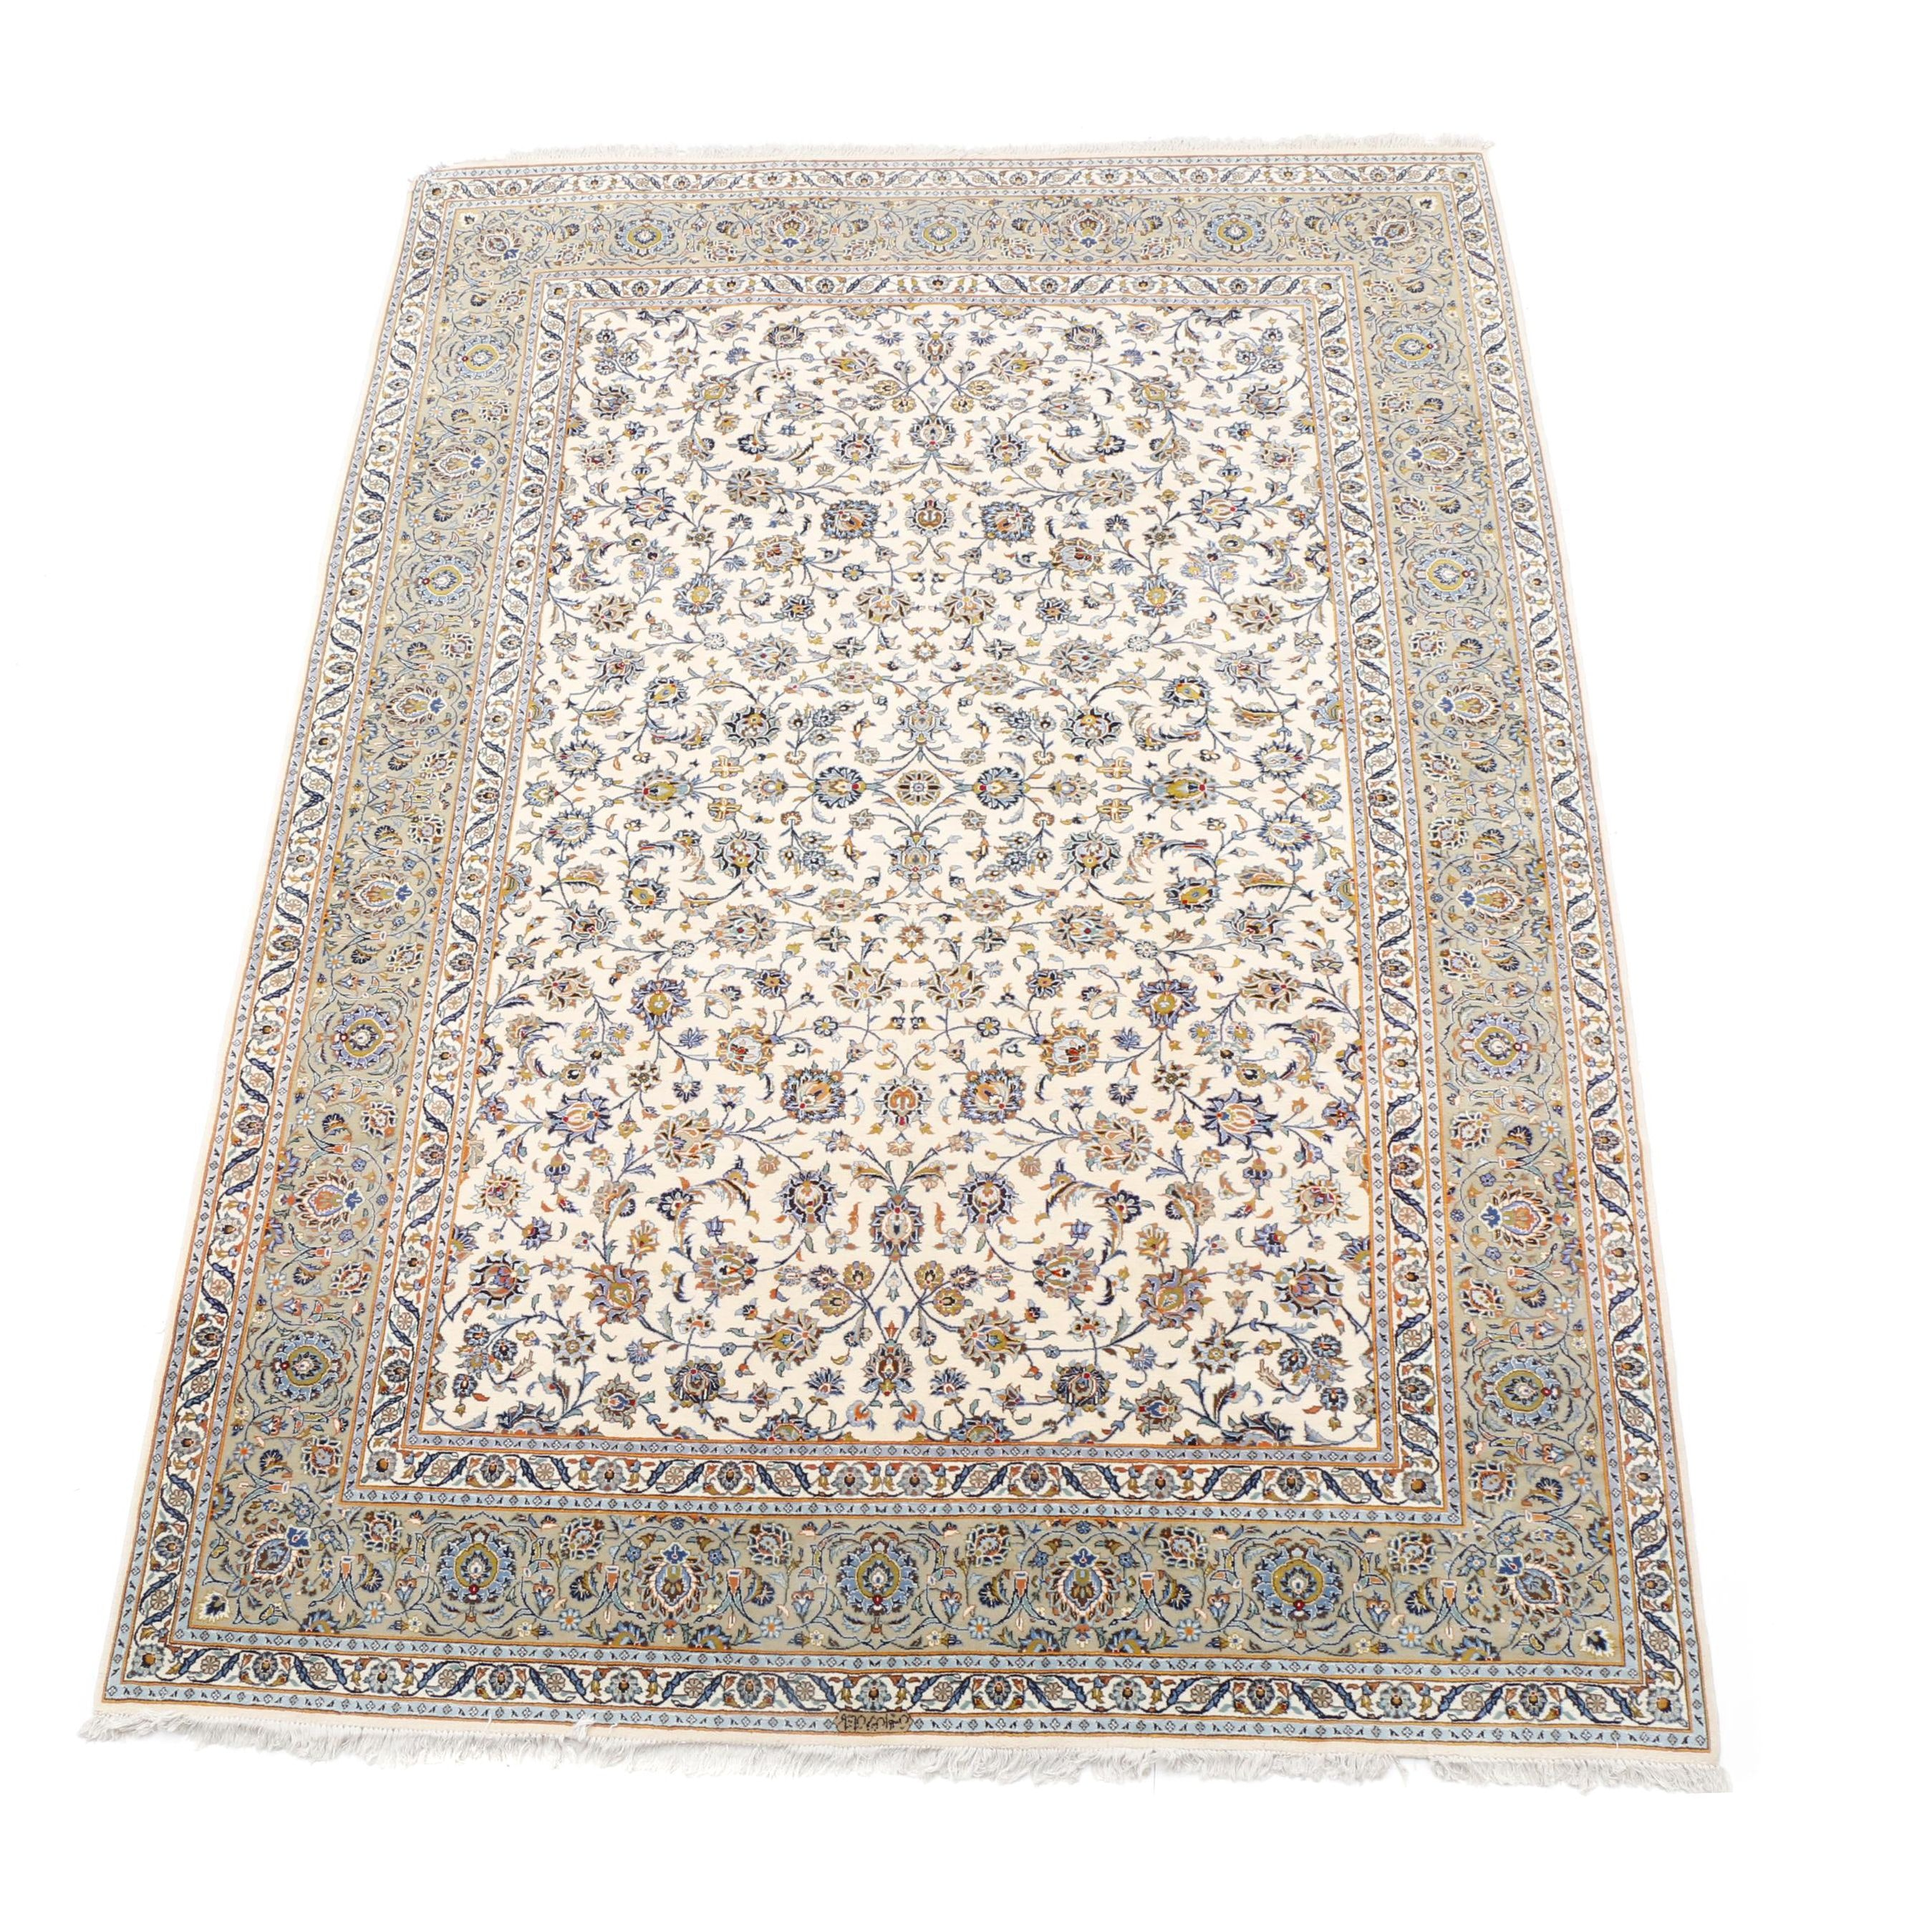 Hand-Knotted Signed Persian Isfahan Style Room-Size Rug